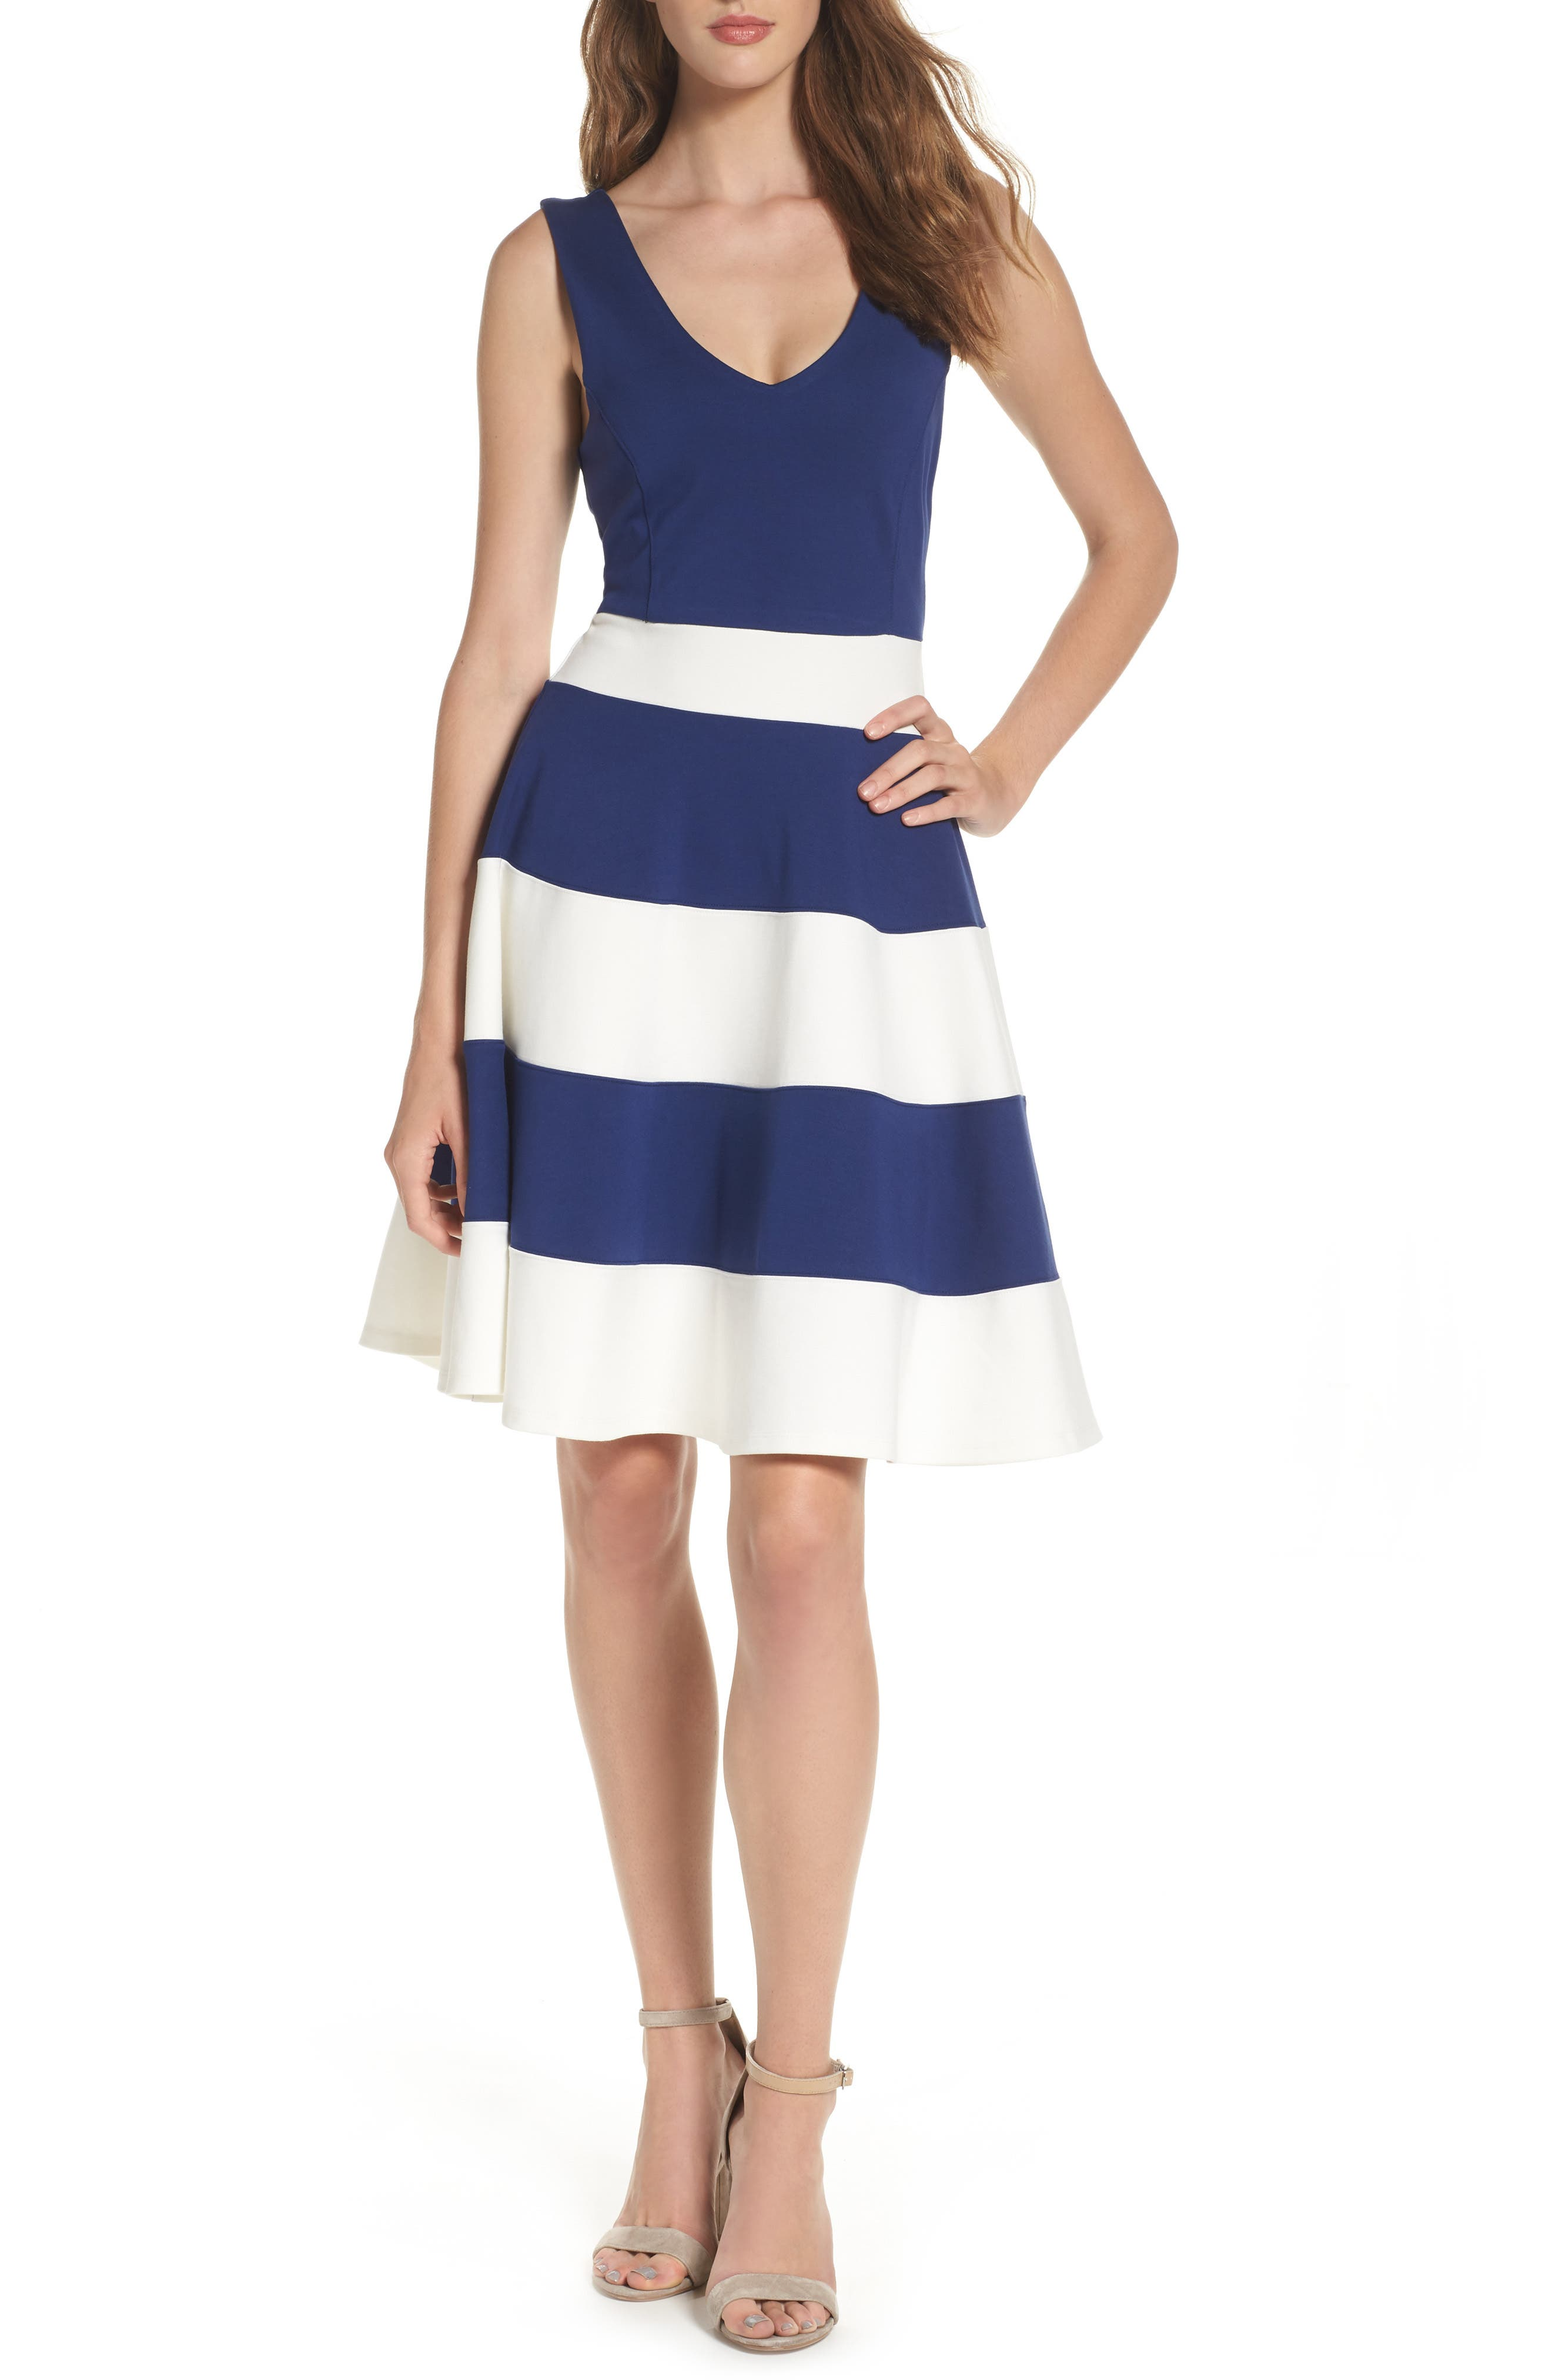 Joice Sleeveless Fit & Flare Dress,                         Main,                         color, Navy/ White